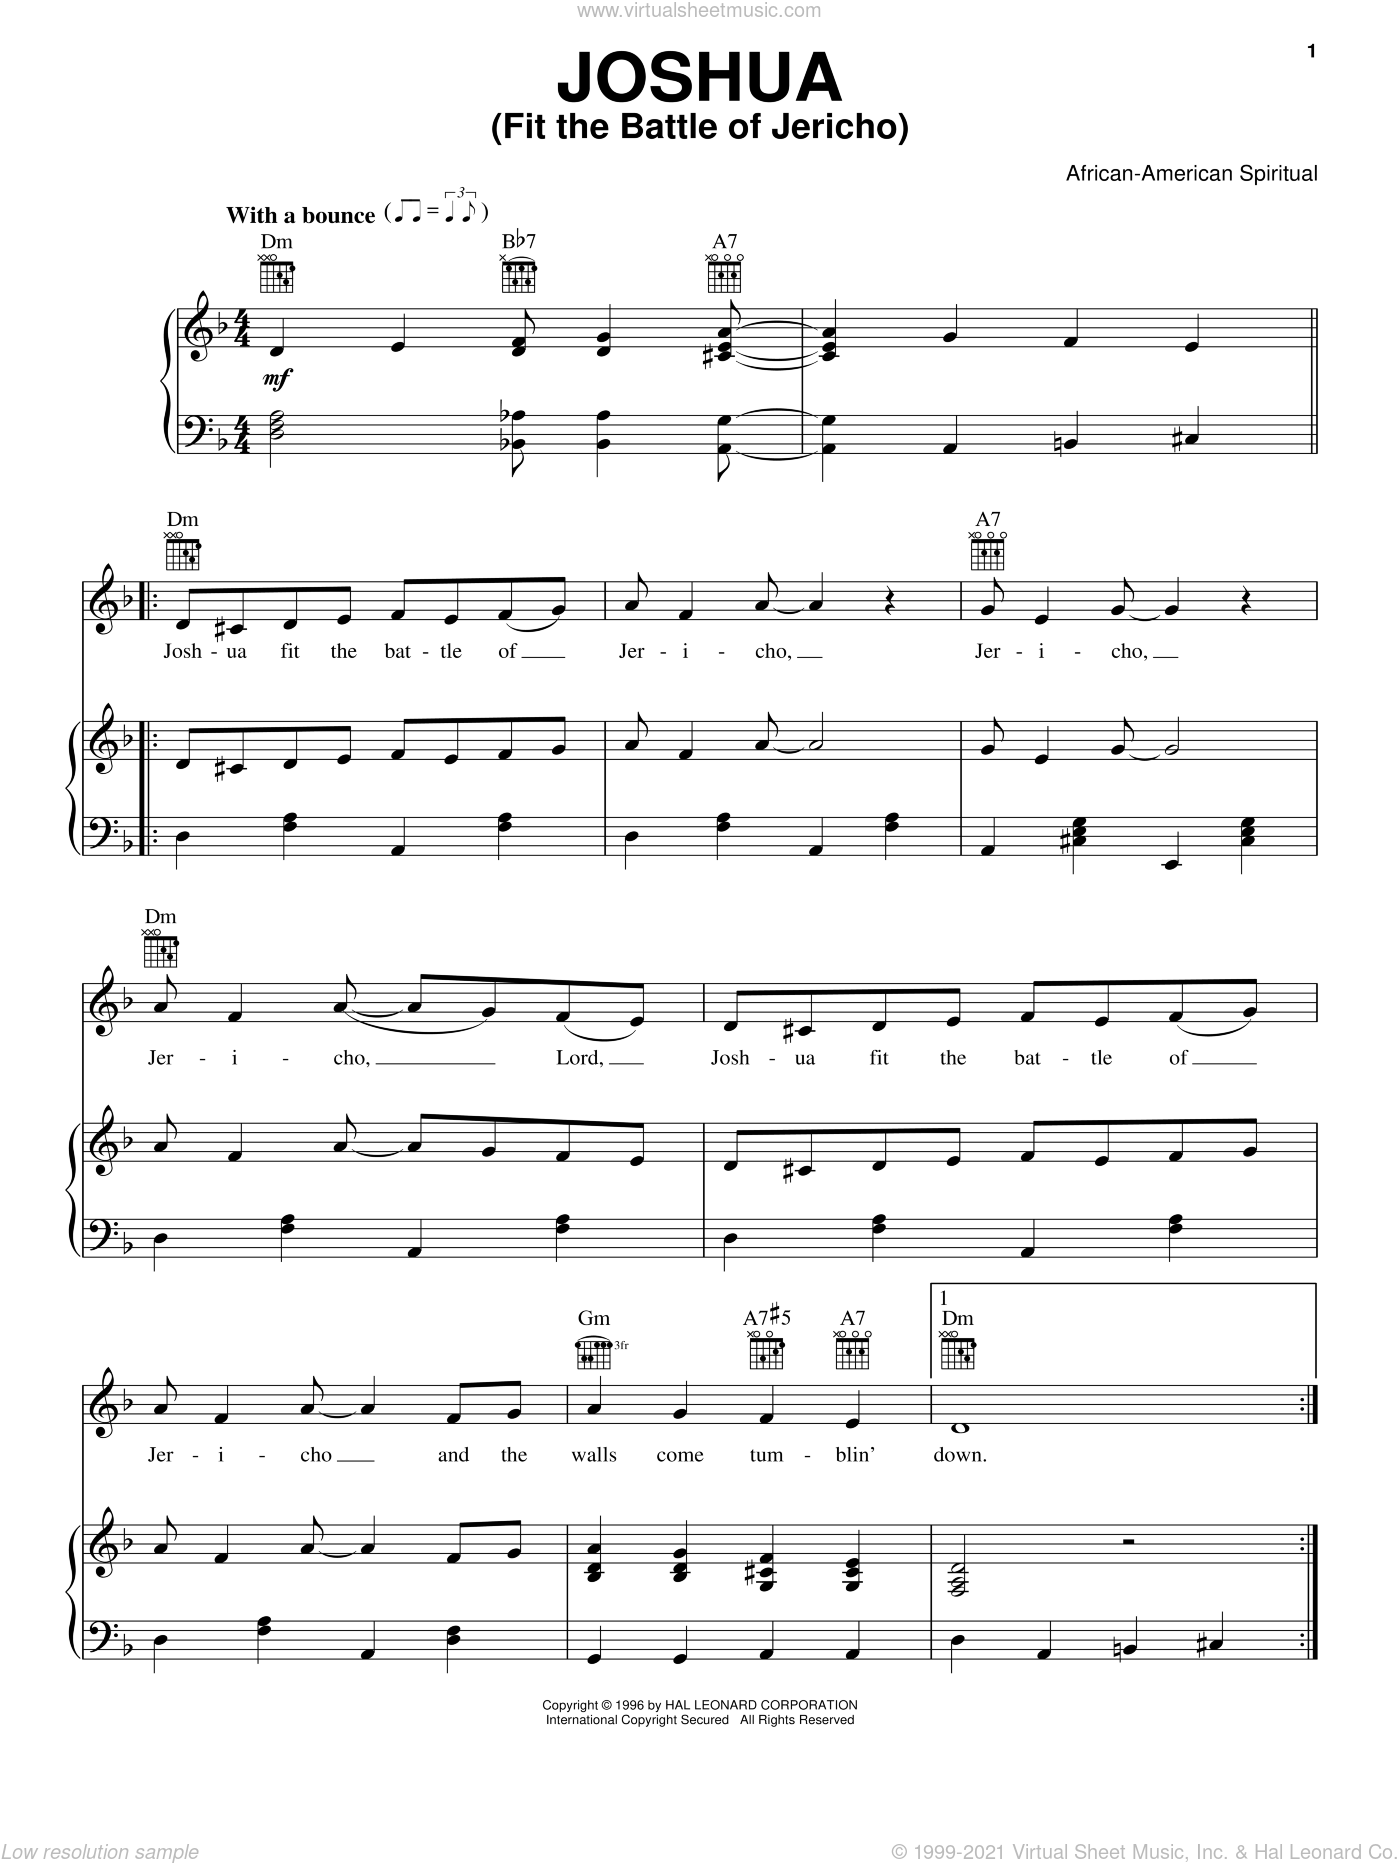 Joshua (Fit The Battle Of Jericho) sheet music for voice, piano or guitar, intermediate skill level